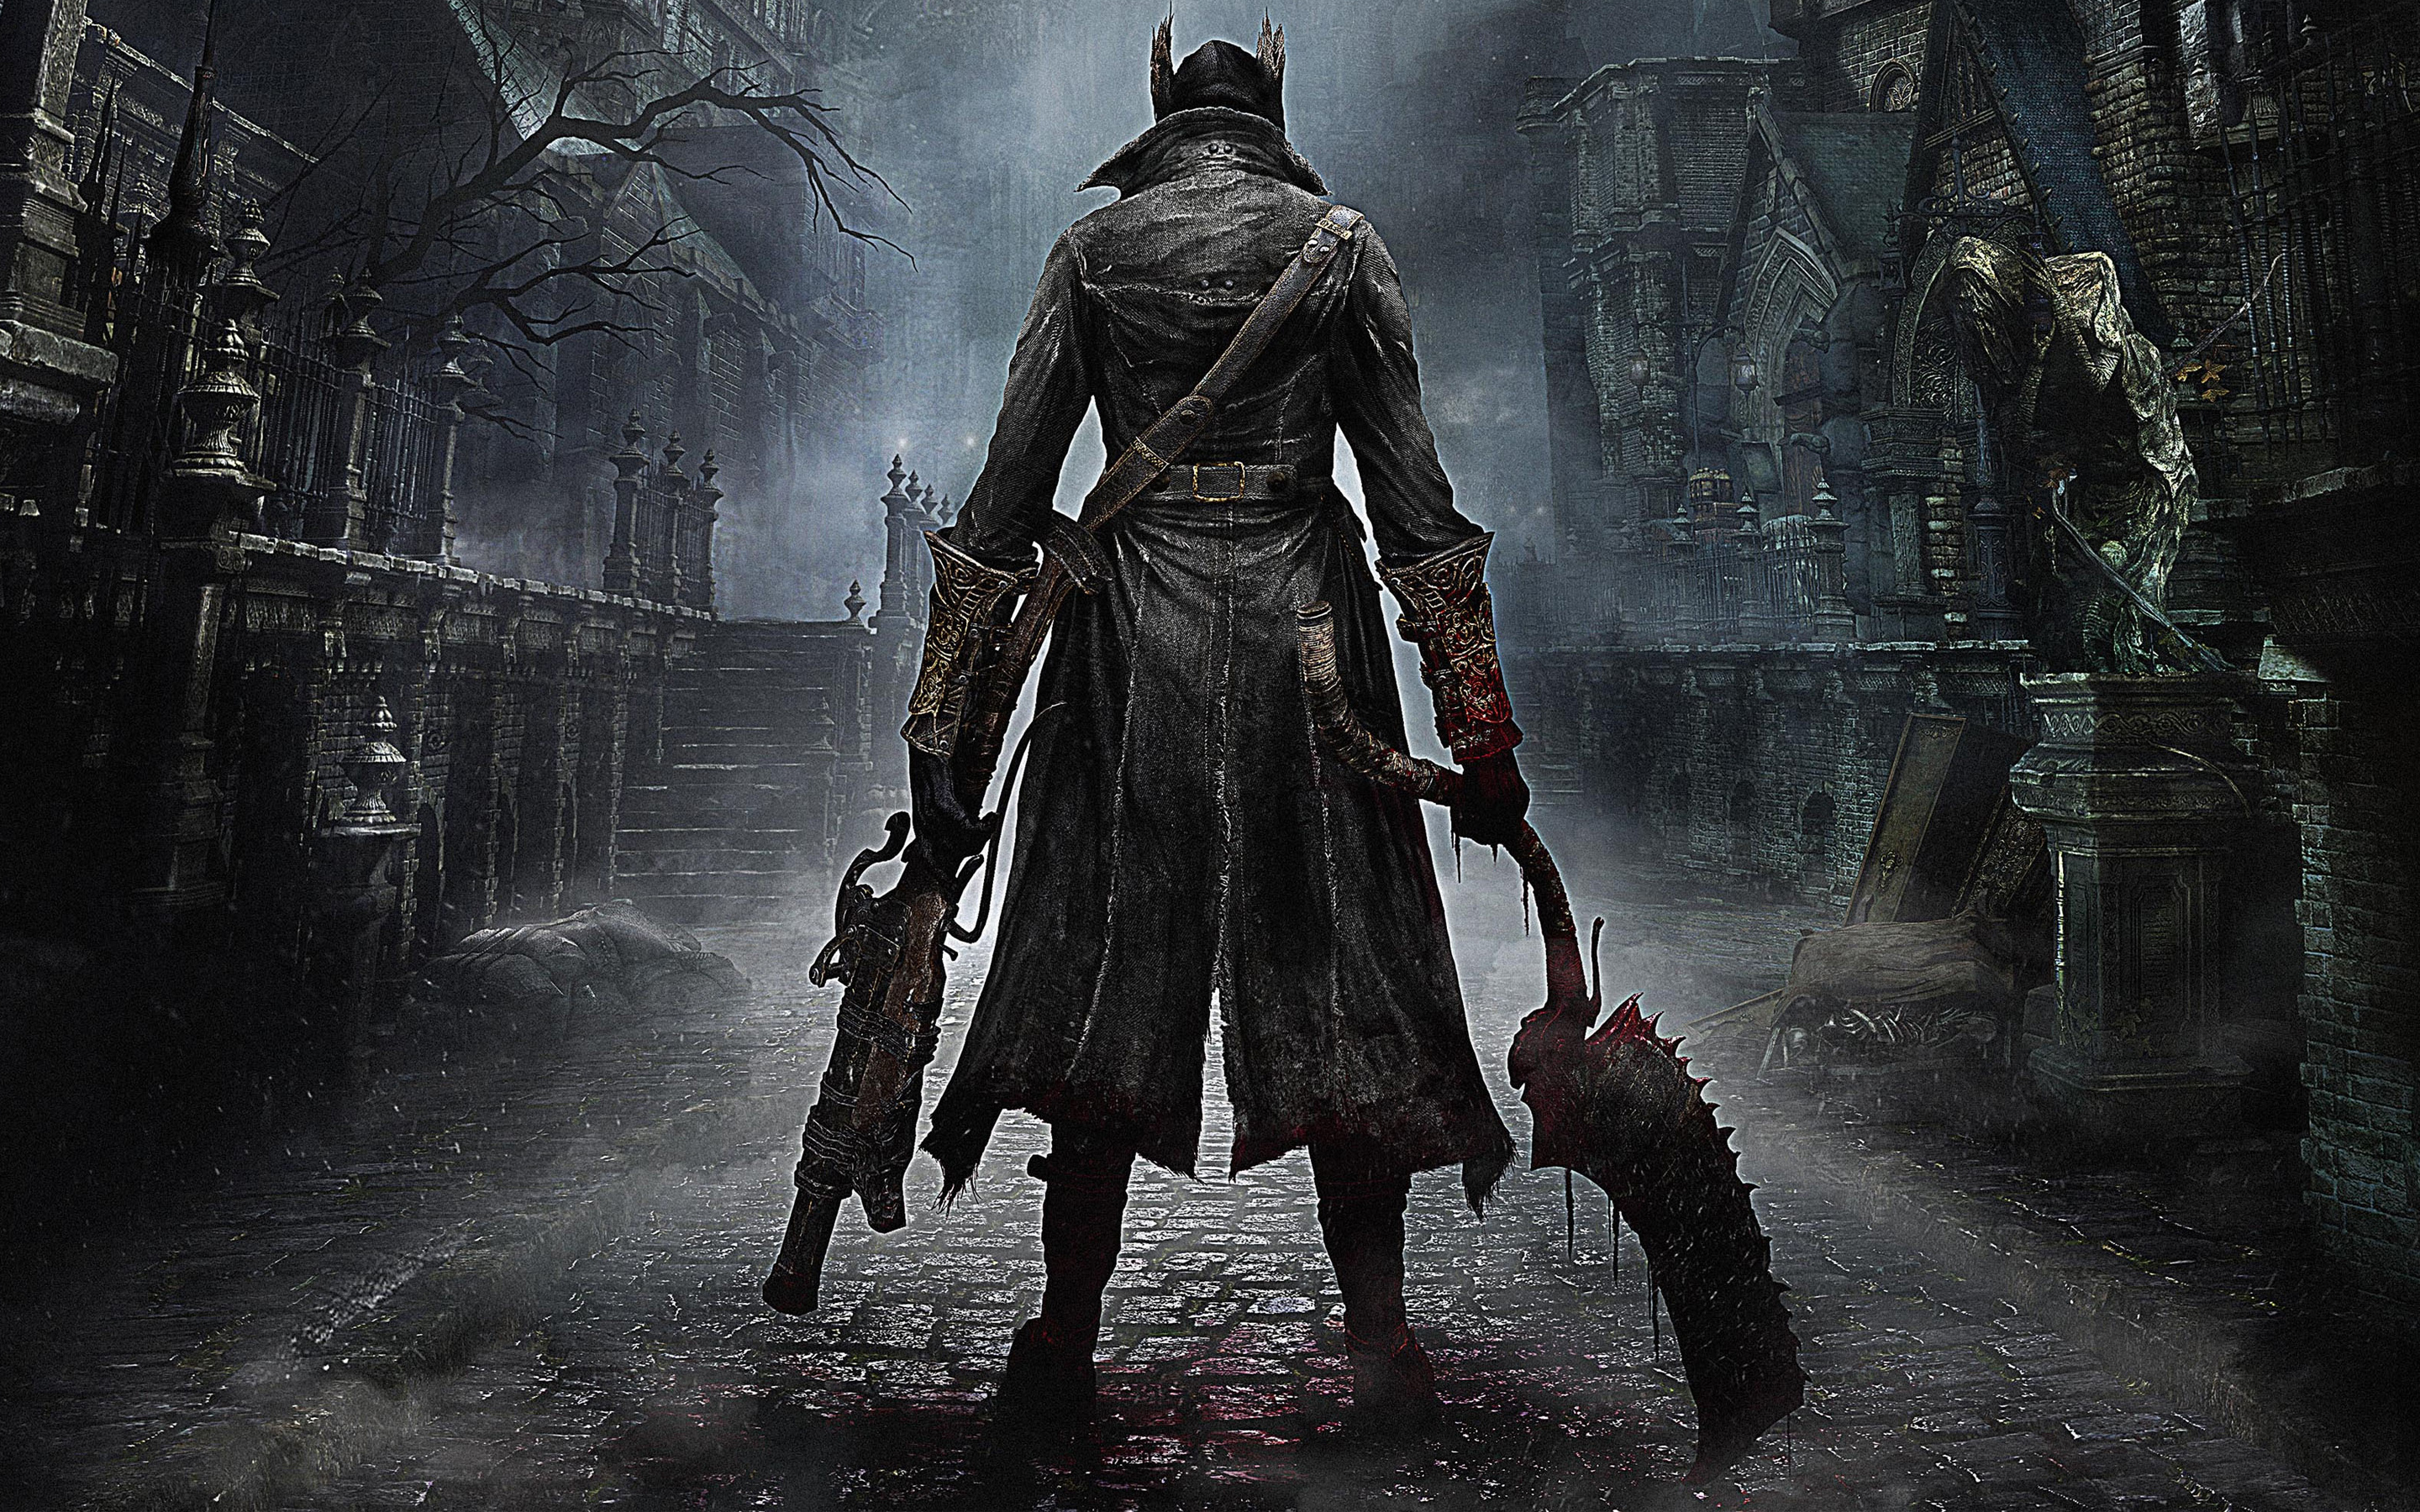 Bloodborne Ps4 Game Bloodborne Ps4 Game